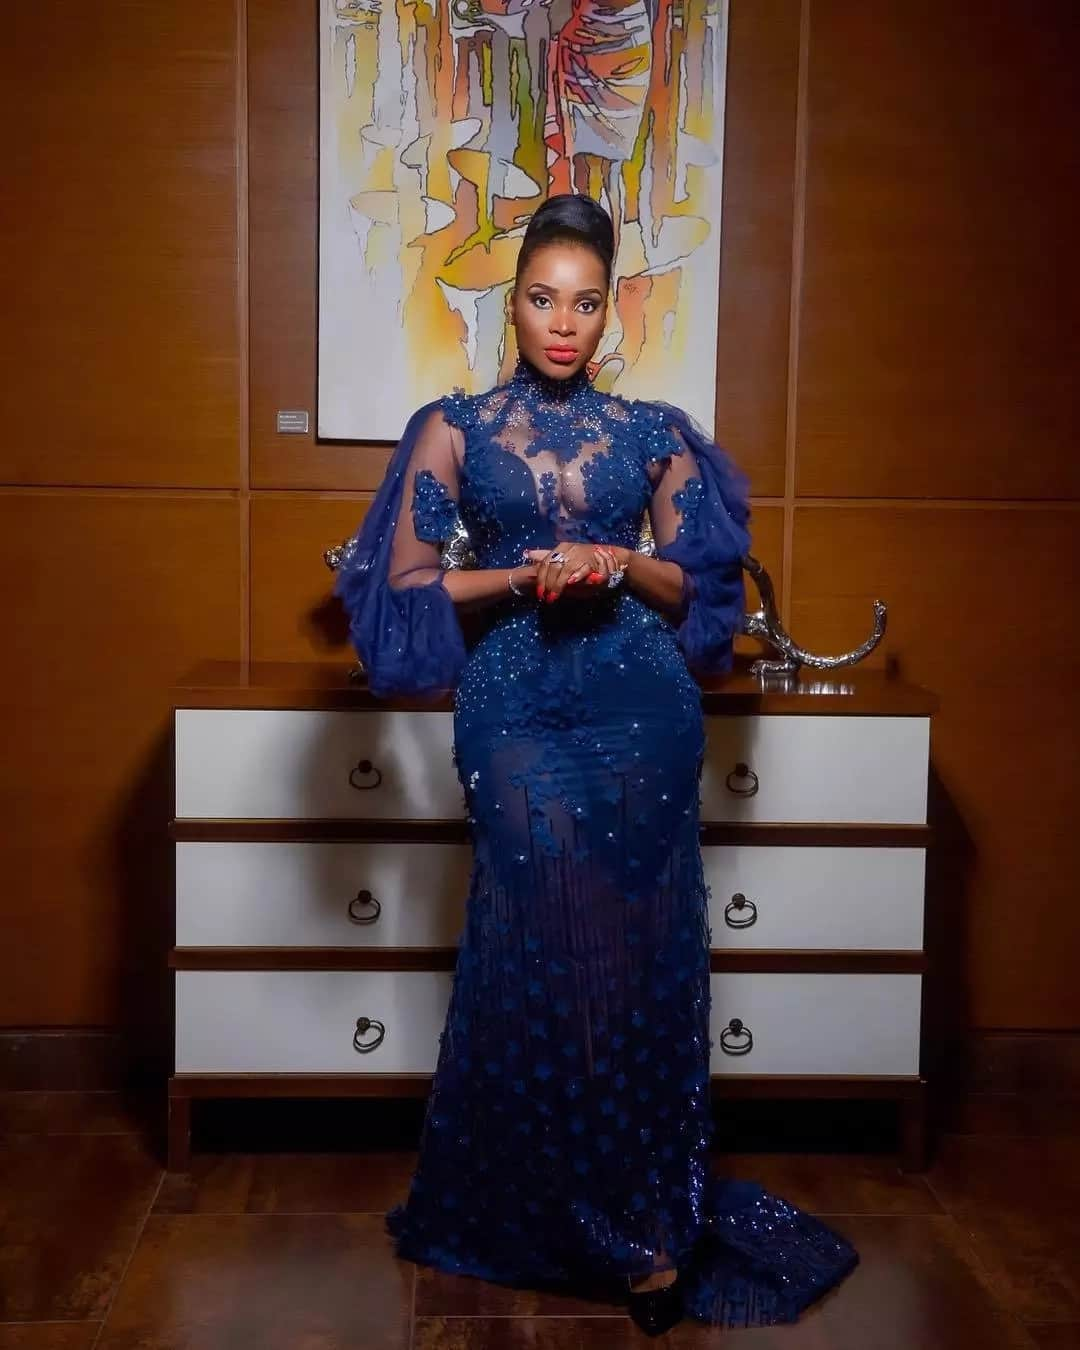 Benedicta looks gorgeous in these 7 photos